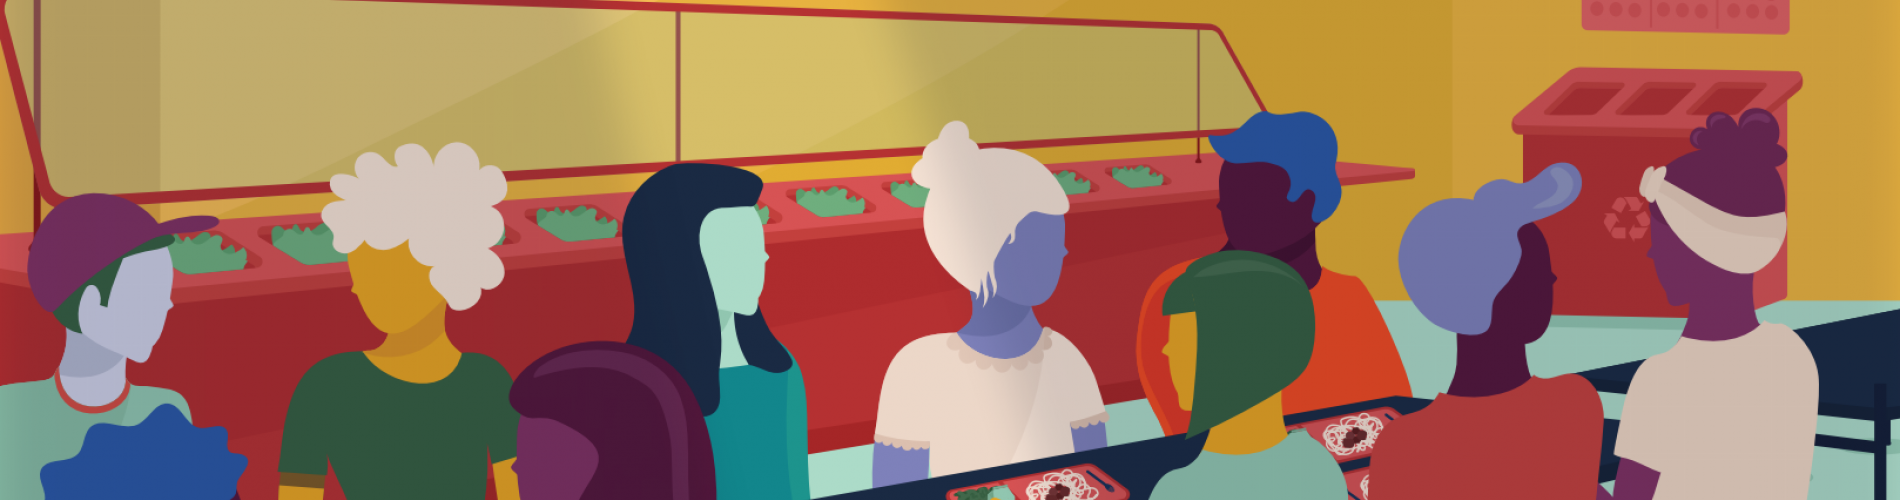 illustration of students in a cafeteria